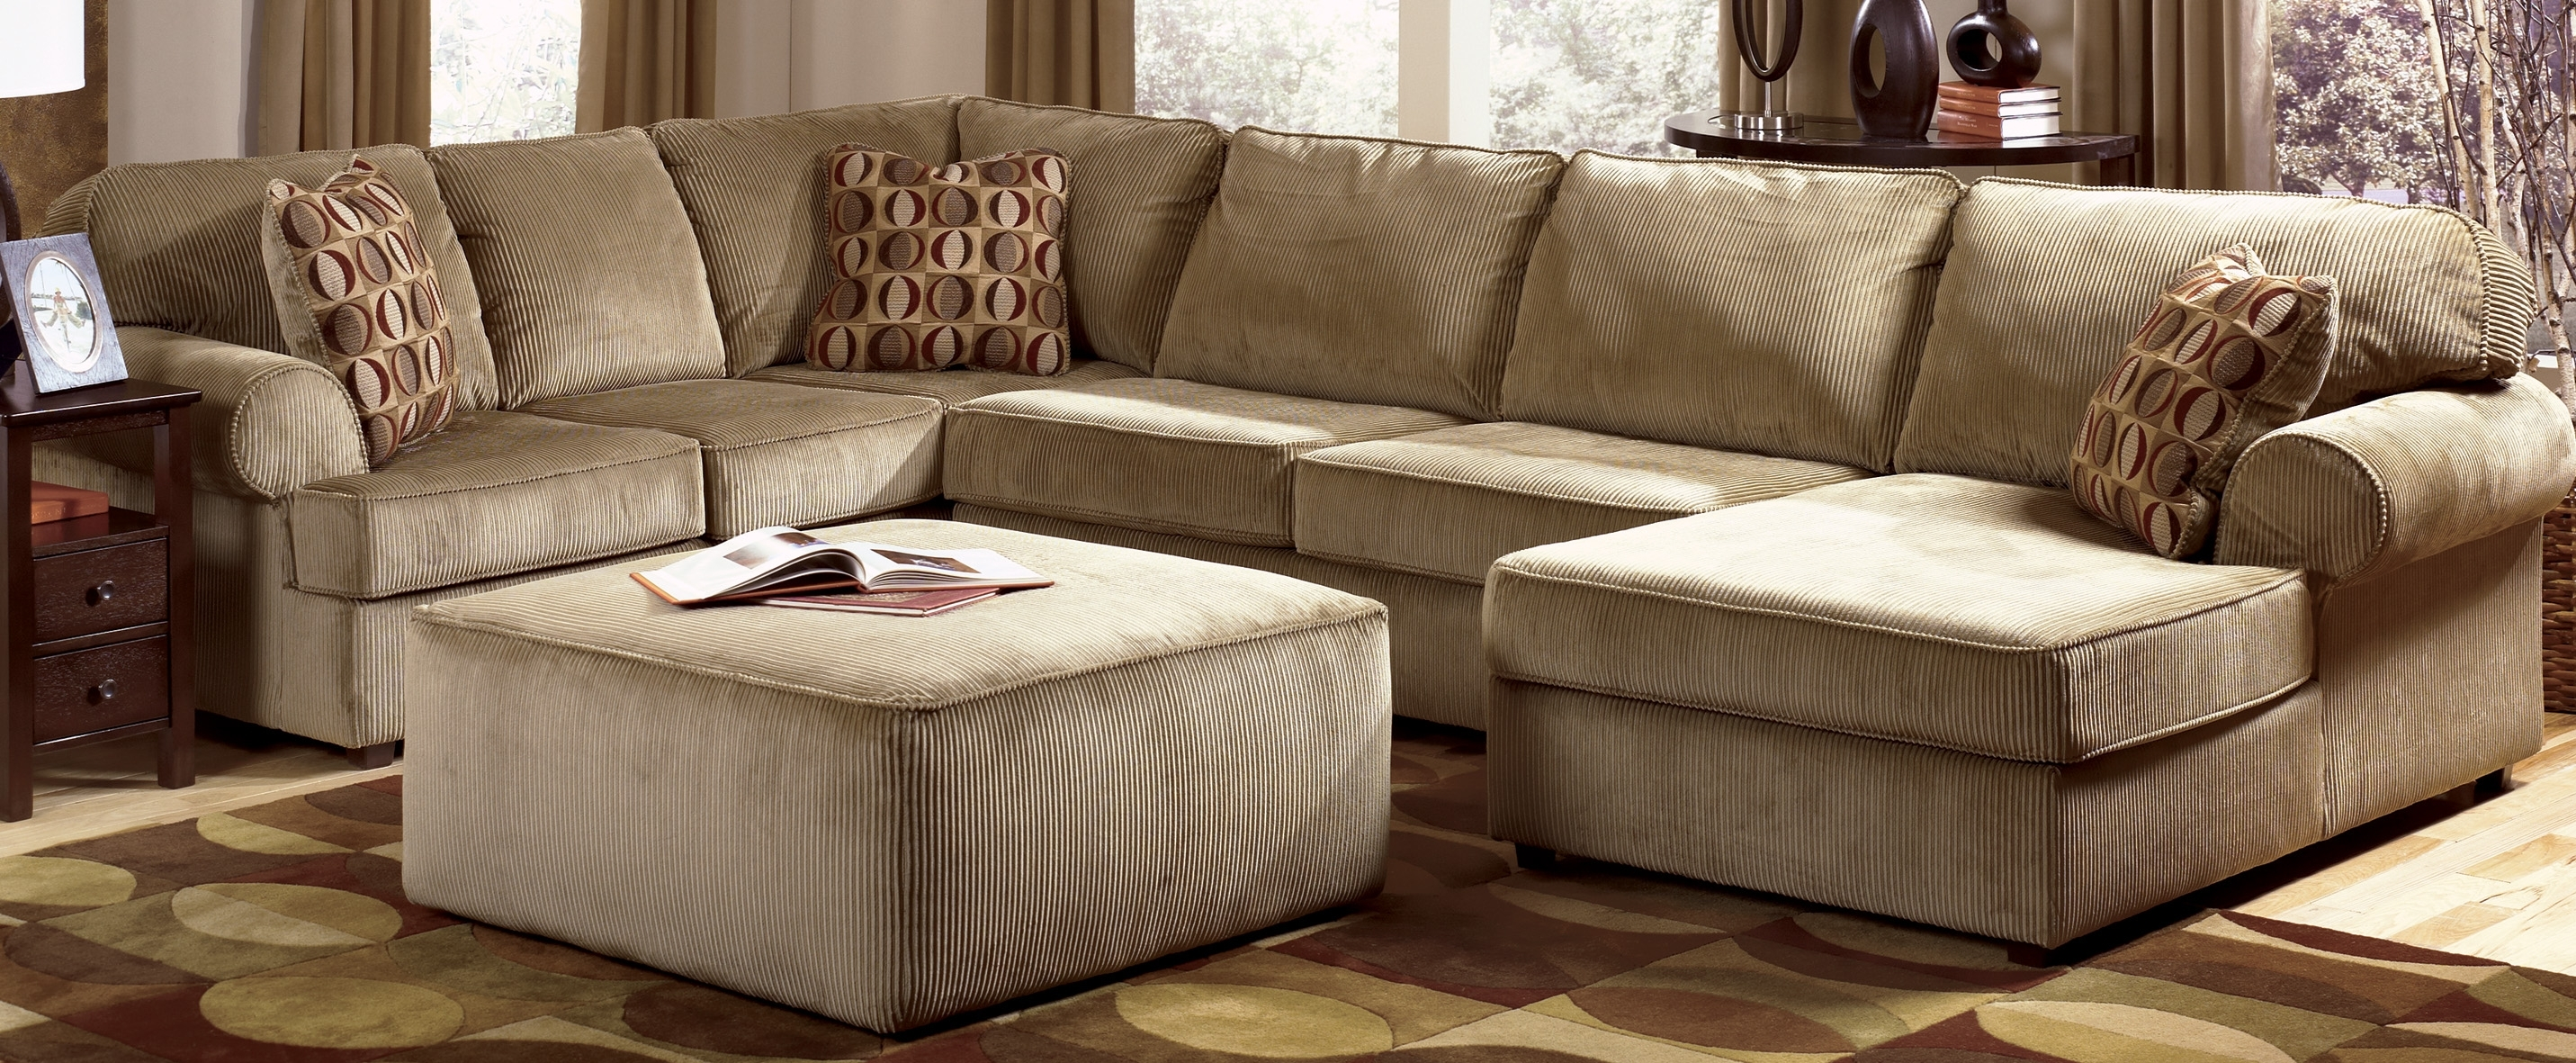 Sectional Sofas On Sale | Aifaresidency With Regard To Raleigh Nc Sectional Sofas (Image 10 of 10)